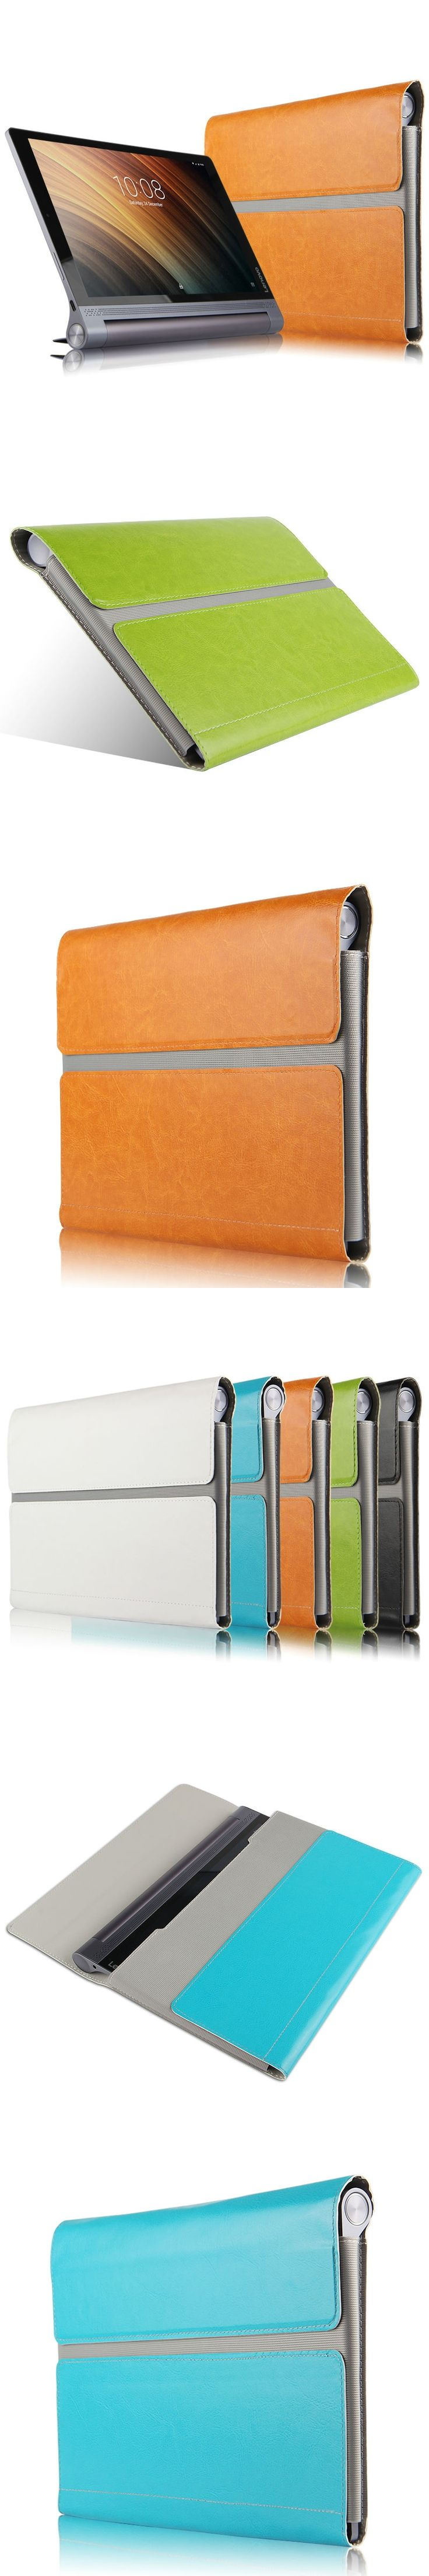 Case For Lenovo Yoga B6000 Protective Smart cover Leather Tablet For Lenovo YOGA B6000 H